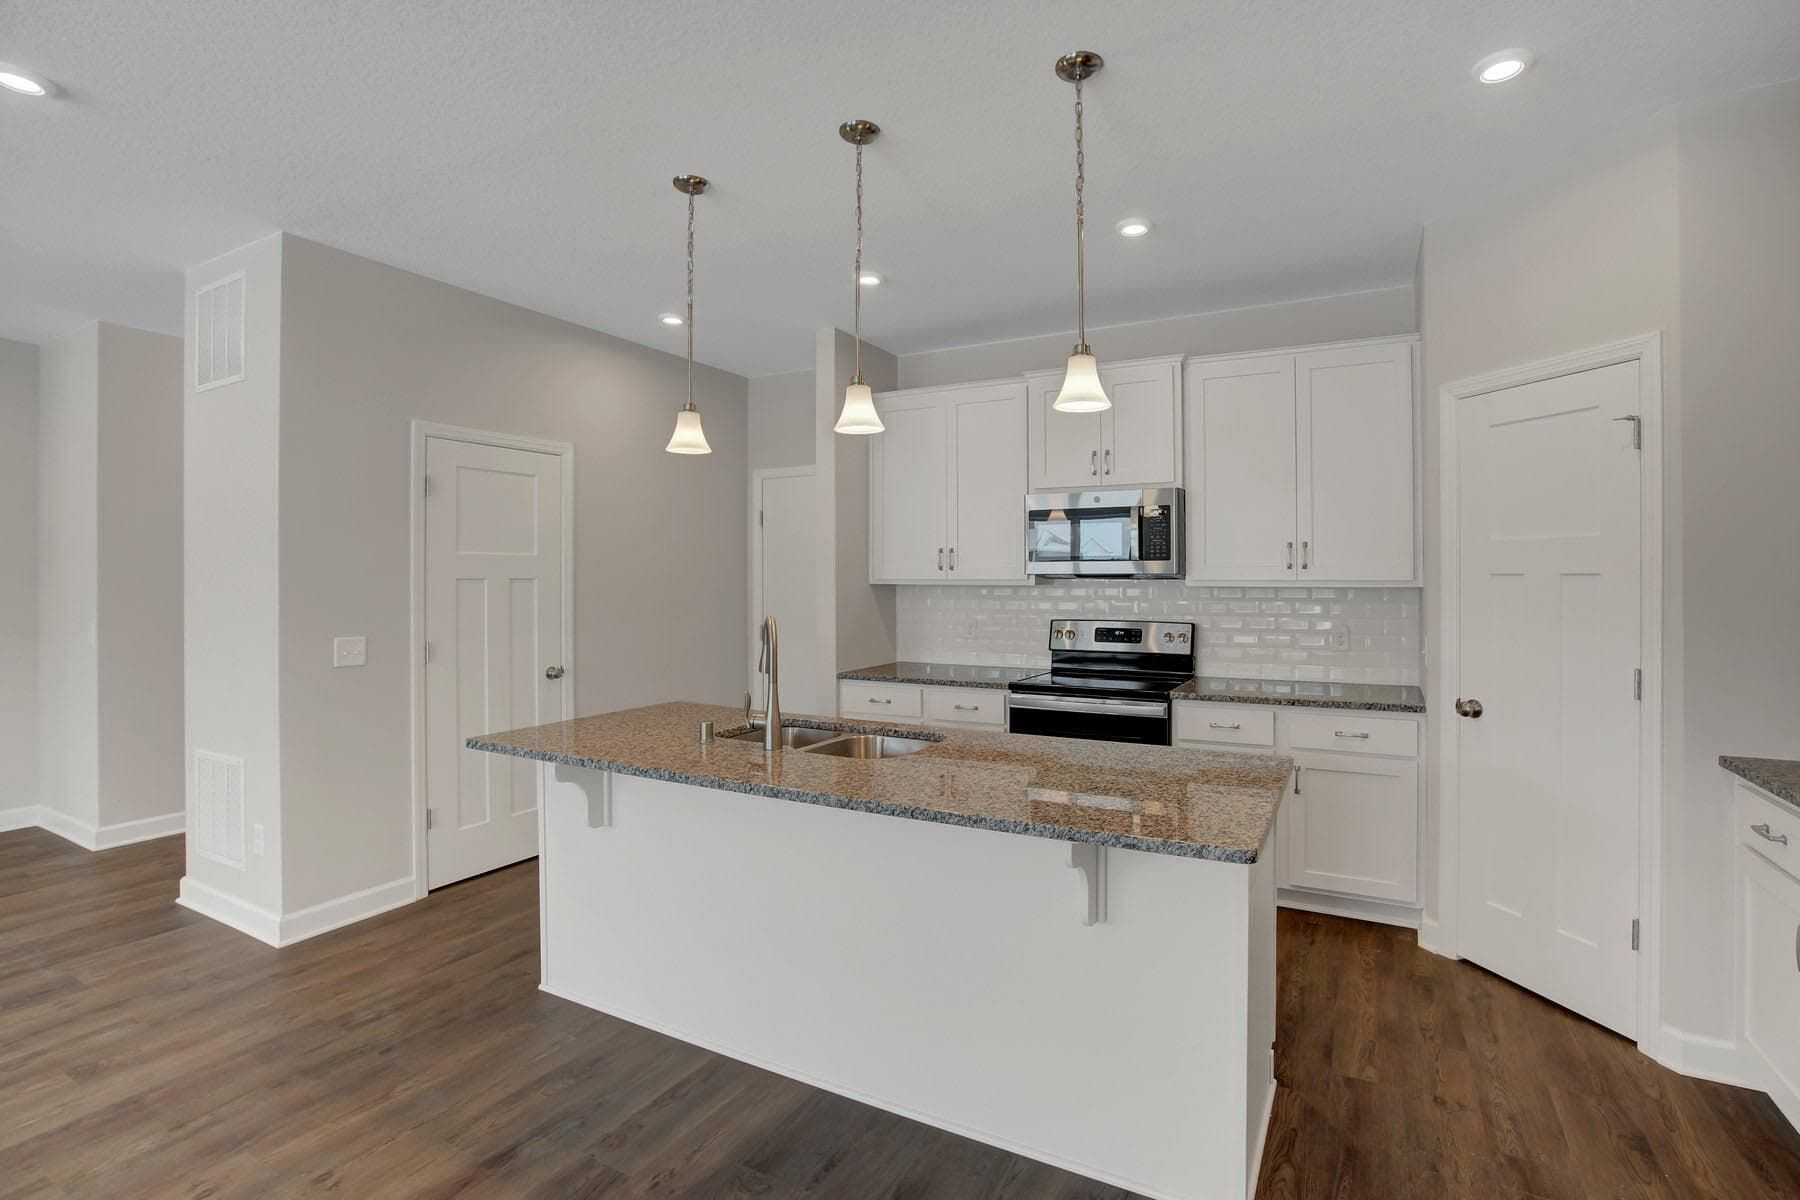 Kitchen featured in the Emerson By M/I Homes in Minneapolis-St. Paul, MN